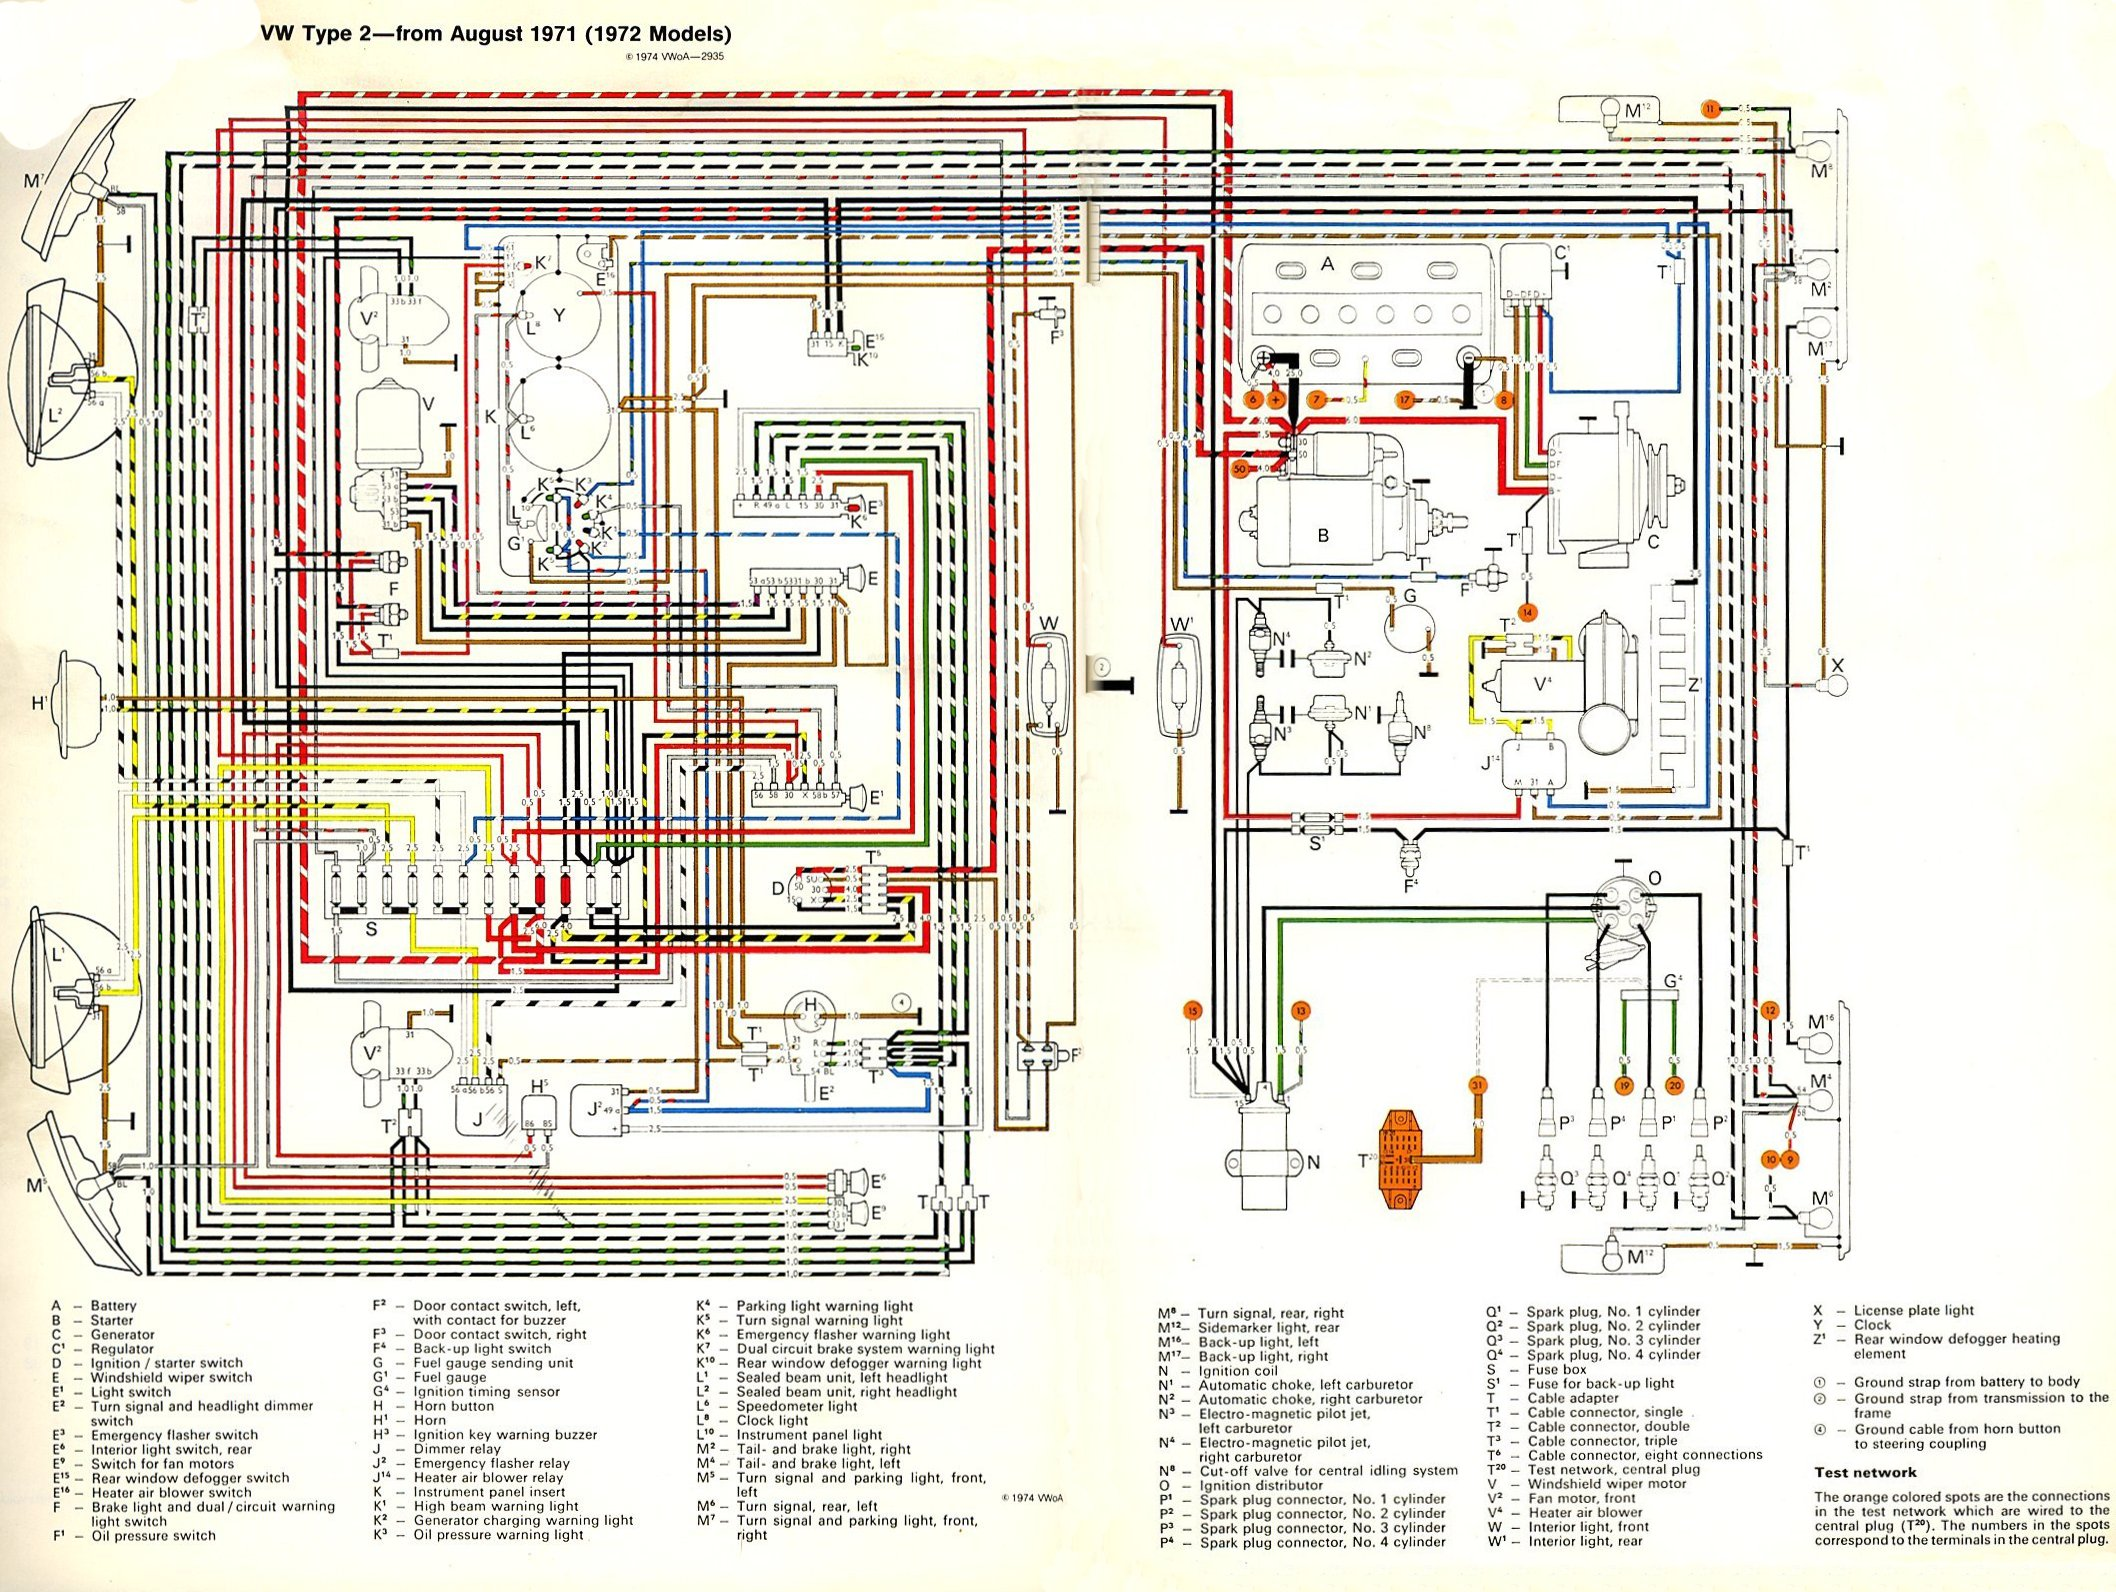 bus_1972_wiring 1972 corvette wiring diagram 1972 corvette ac wiring diagram 1971 yamaha ct1 175 wiring diagram at crackthecode.co